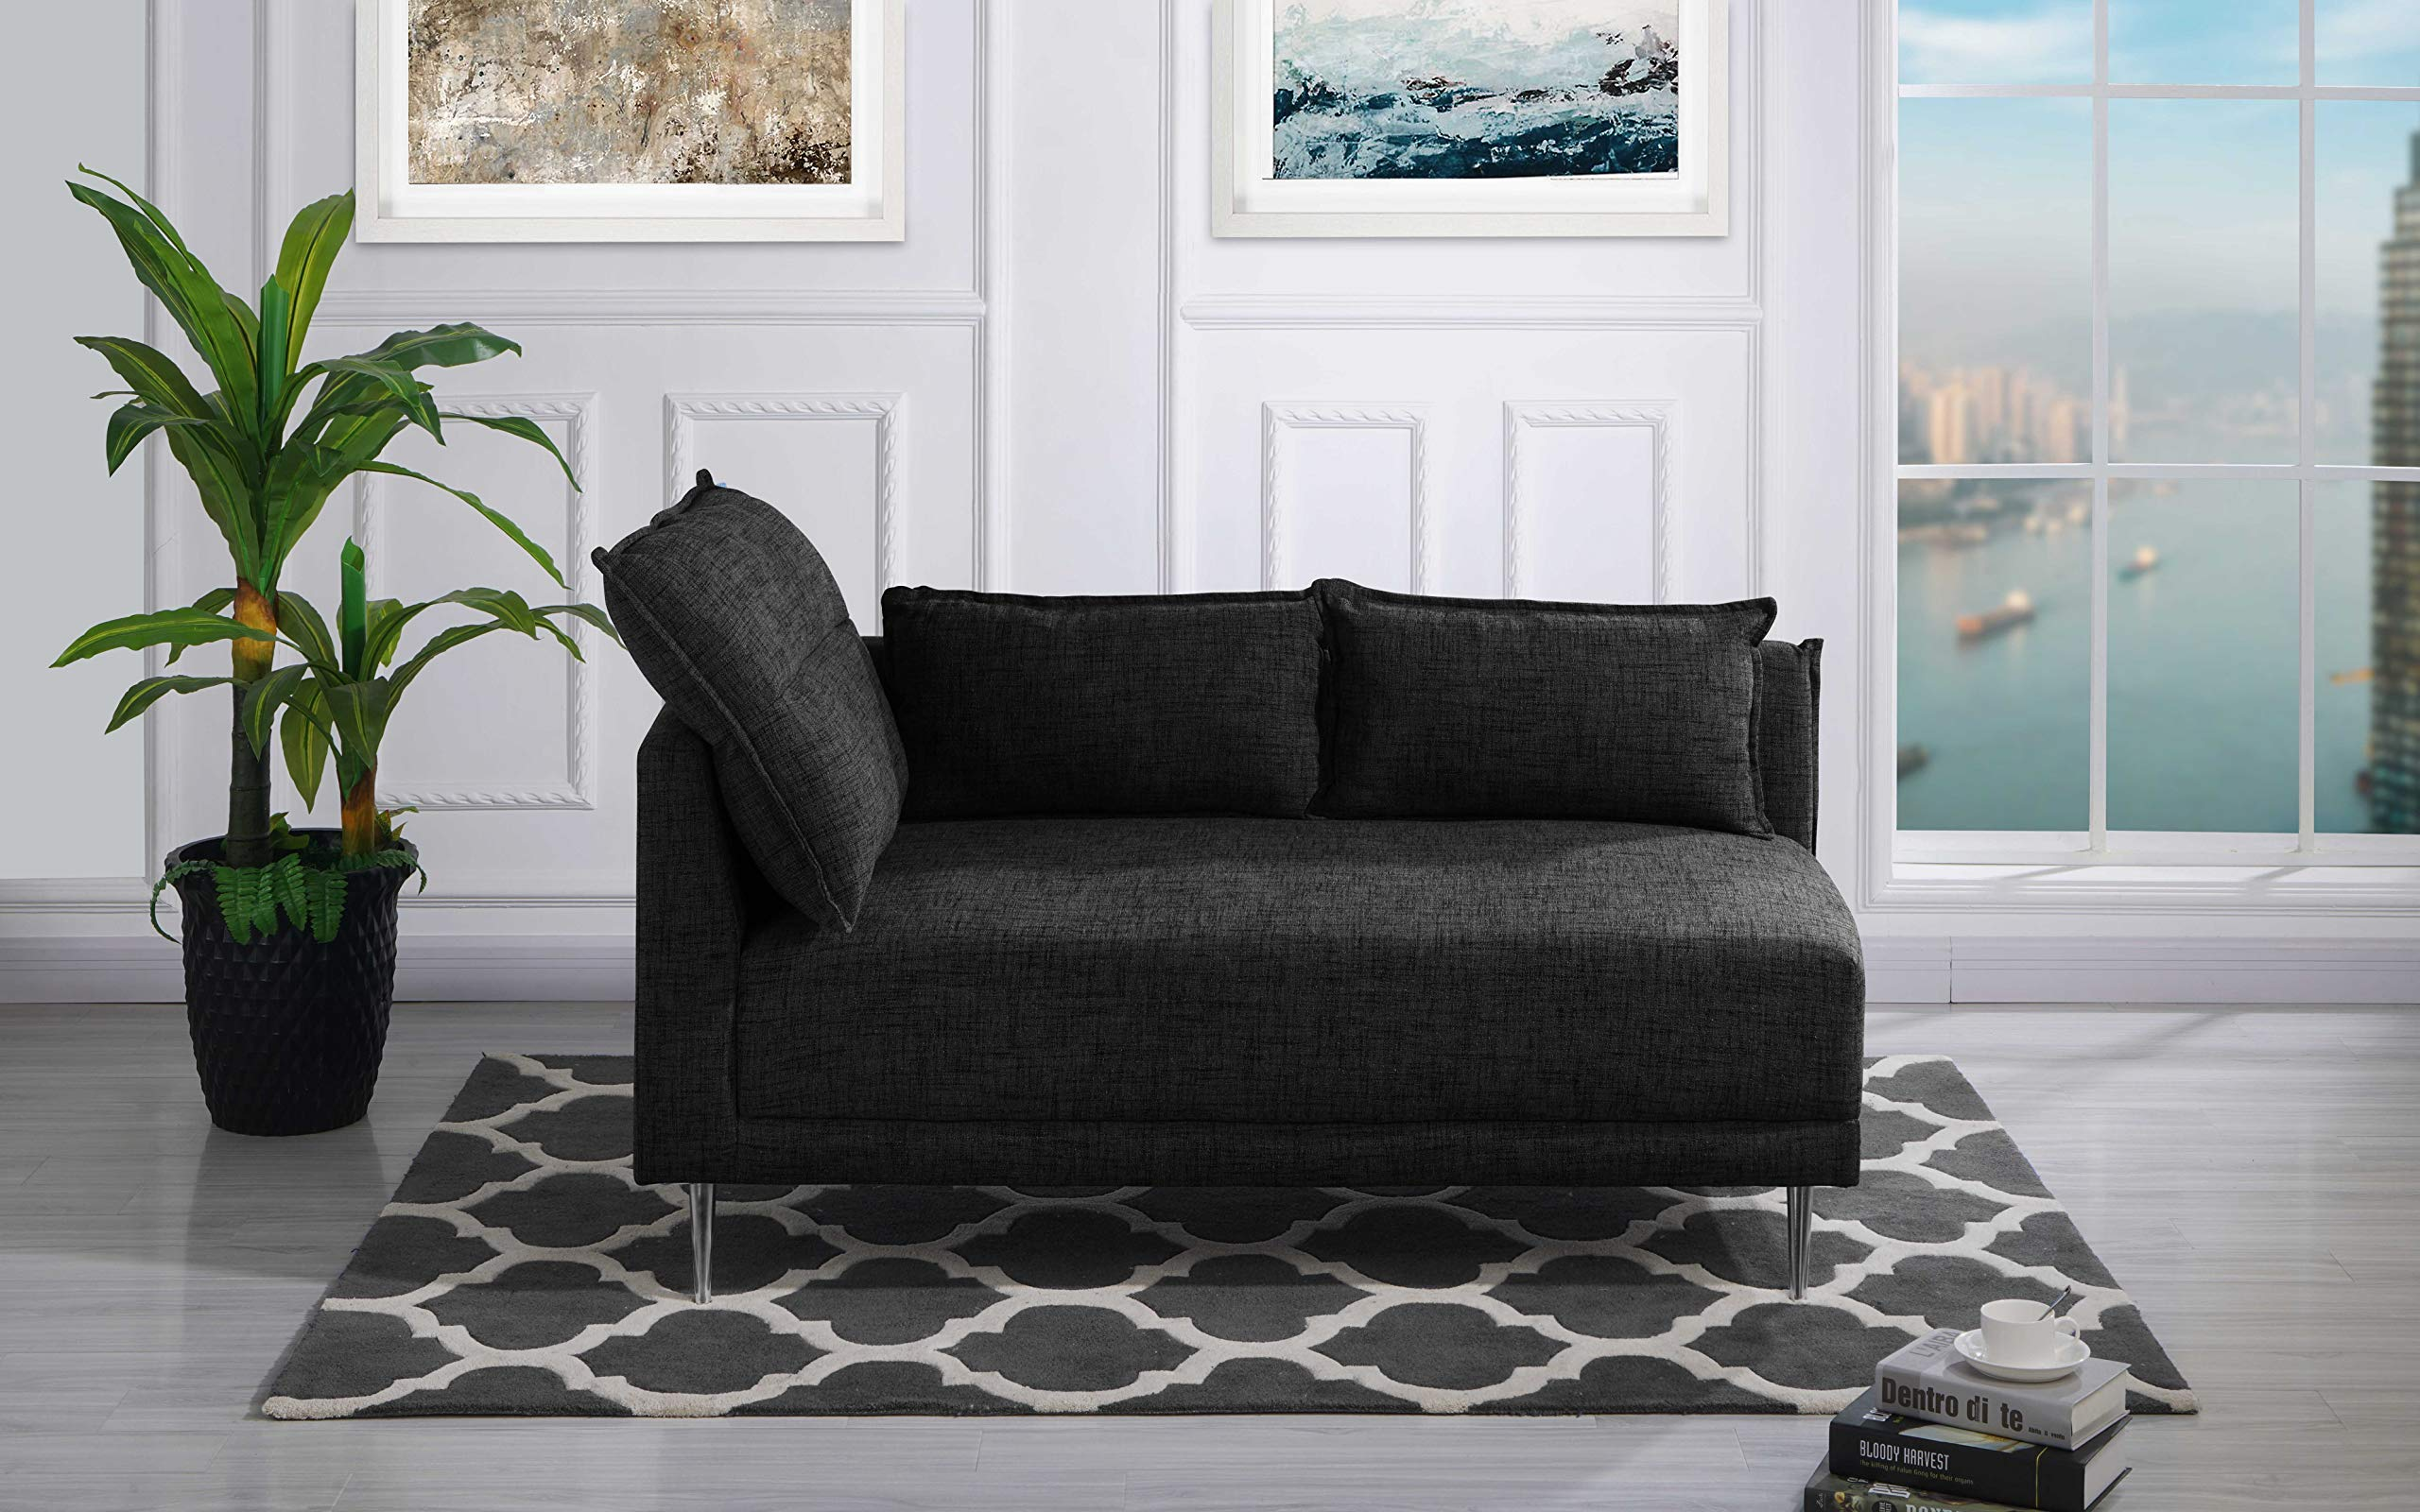 Upholstered 55.9'' inch Modern Living Room Linen Chaise Lounge (Black) by Casa Andrea